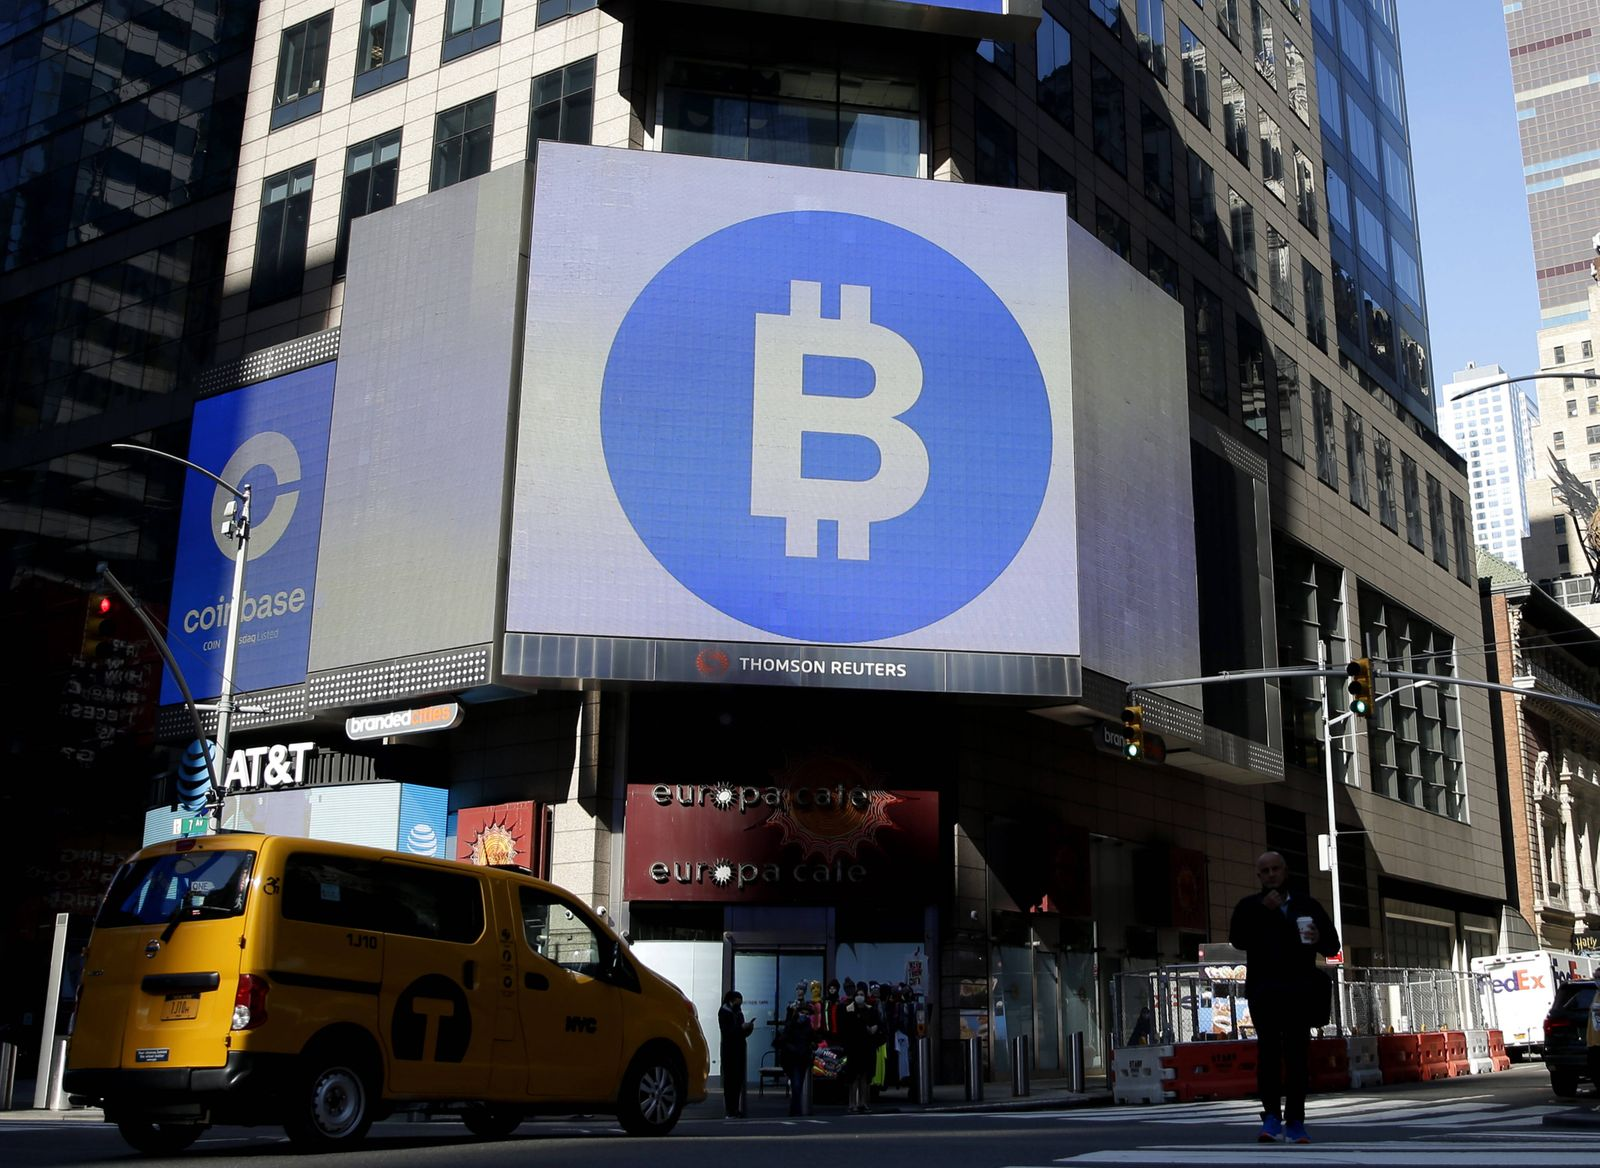 The Bitcoin logo is displayed on a screen in Times Square when Coinbase Global, Inc. beings trading under the symbol CO